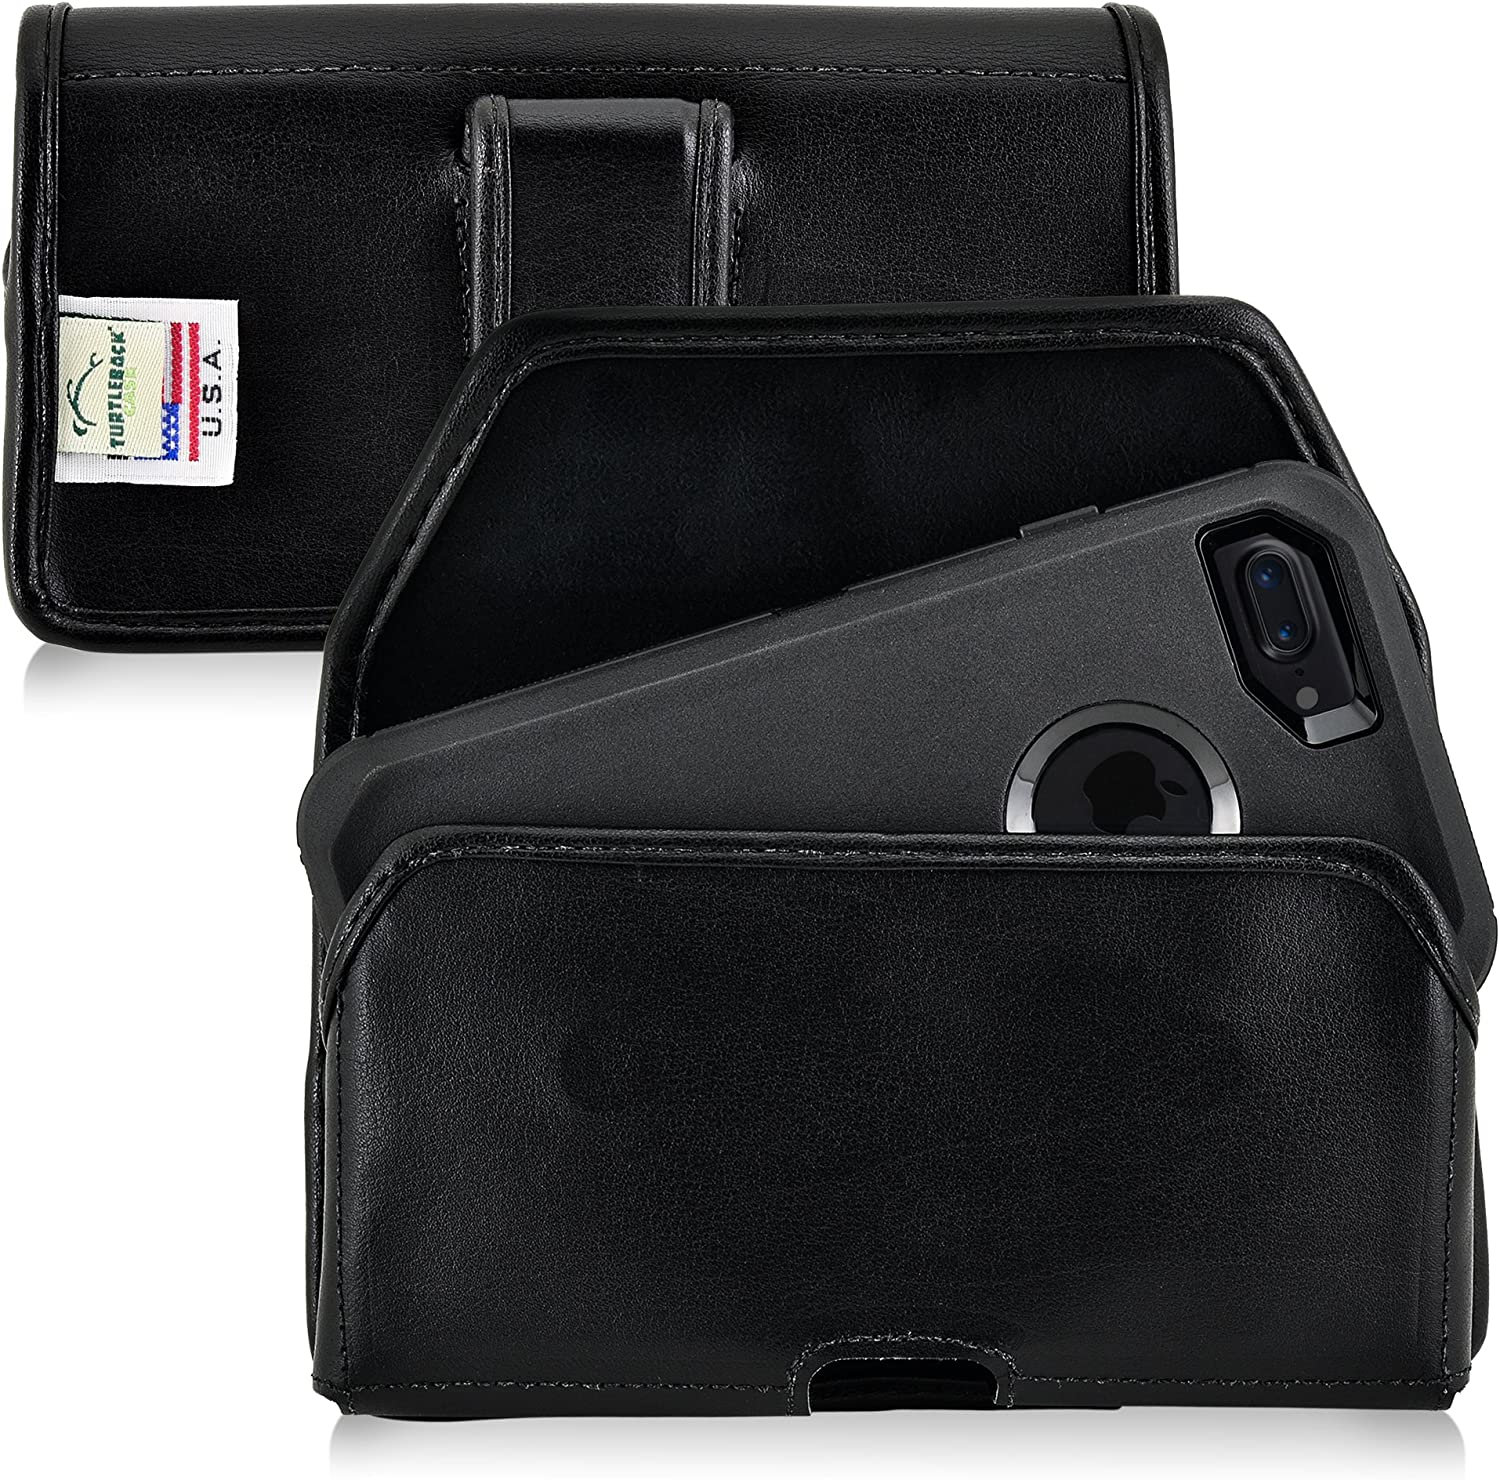 Turtleback Holster Compatible with iPhone 8 & iPhone 7 Fits w/OB Defender or Bulky Cases, Black Belt Case Leather Pouch with Executive Belt Clip Horizontal Made in USA